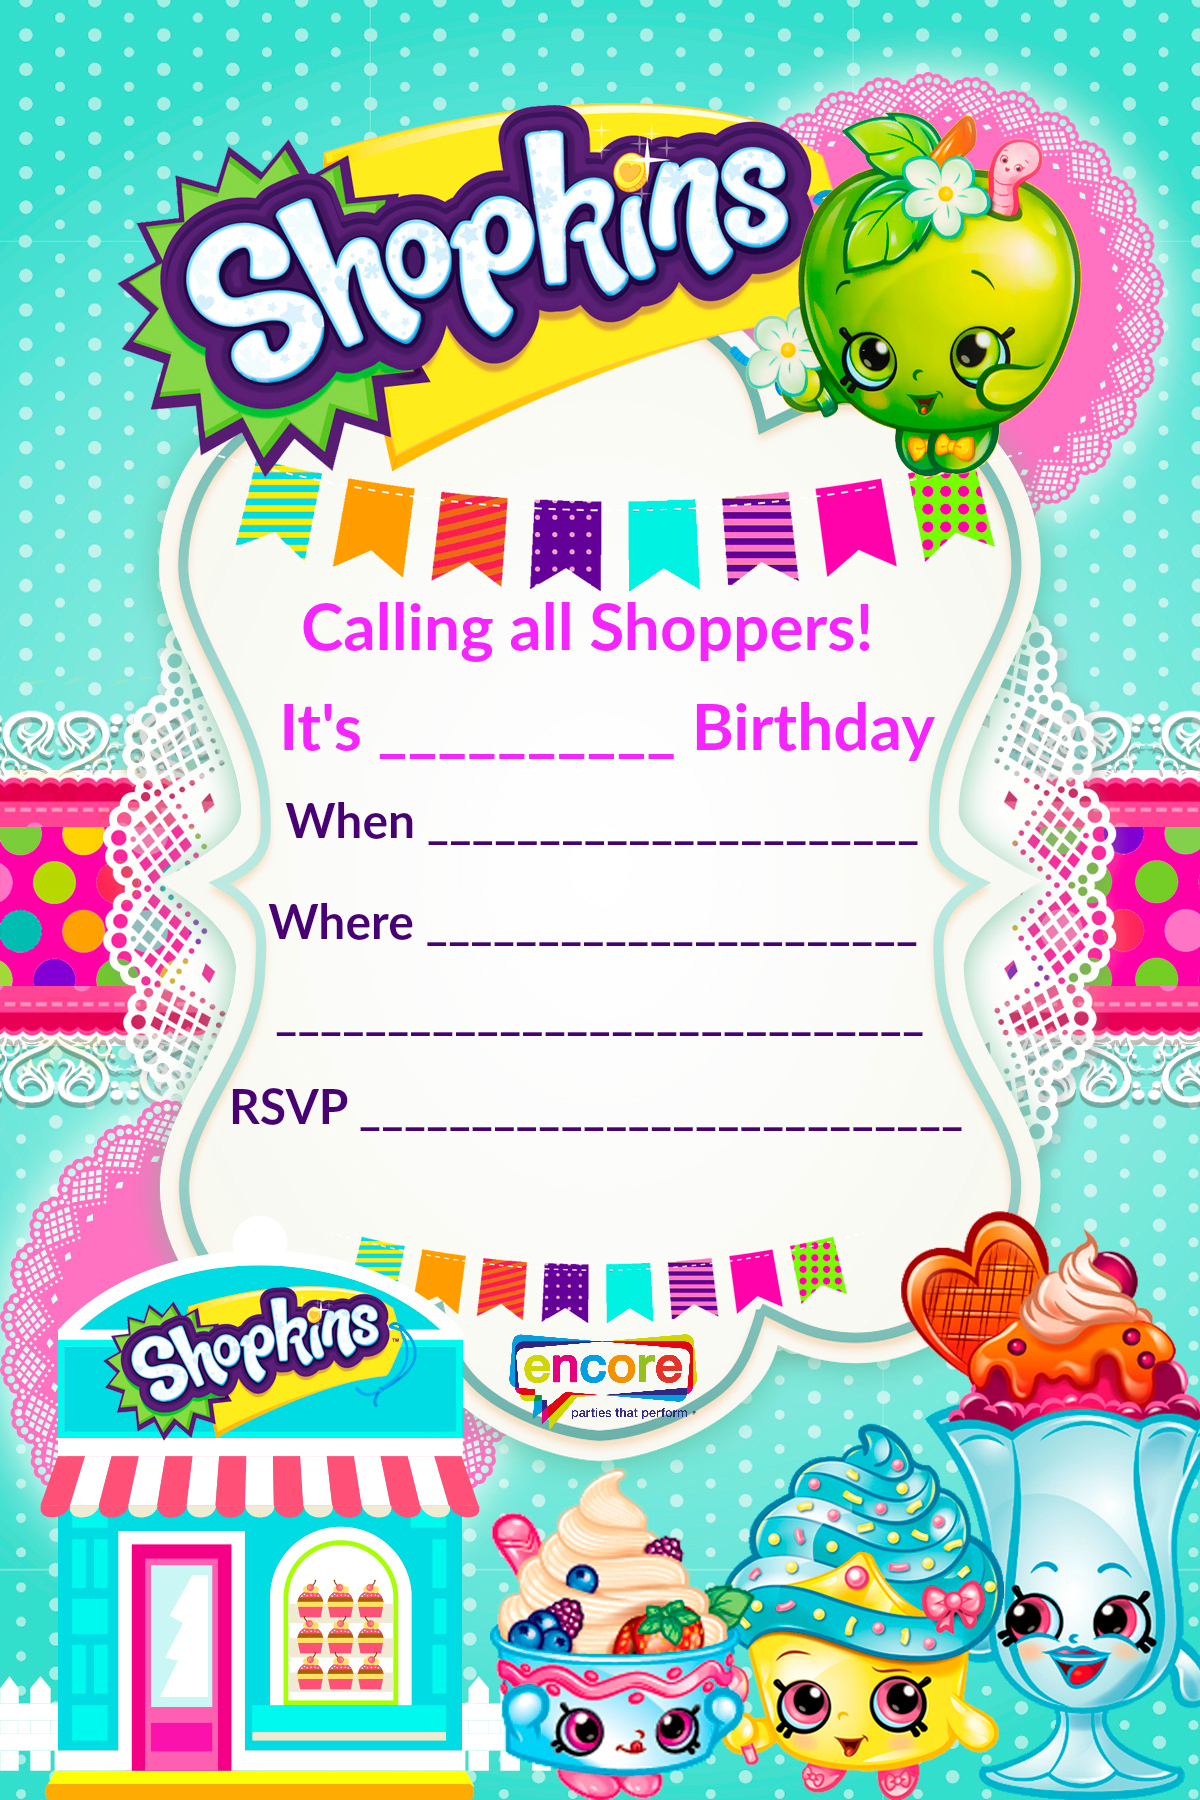 Shopkins Party Invite Download FREE Encore Kids Parties - Birthday invitation images download